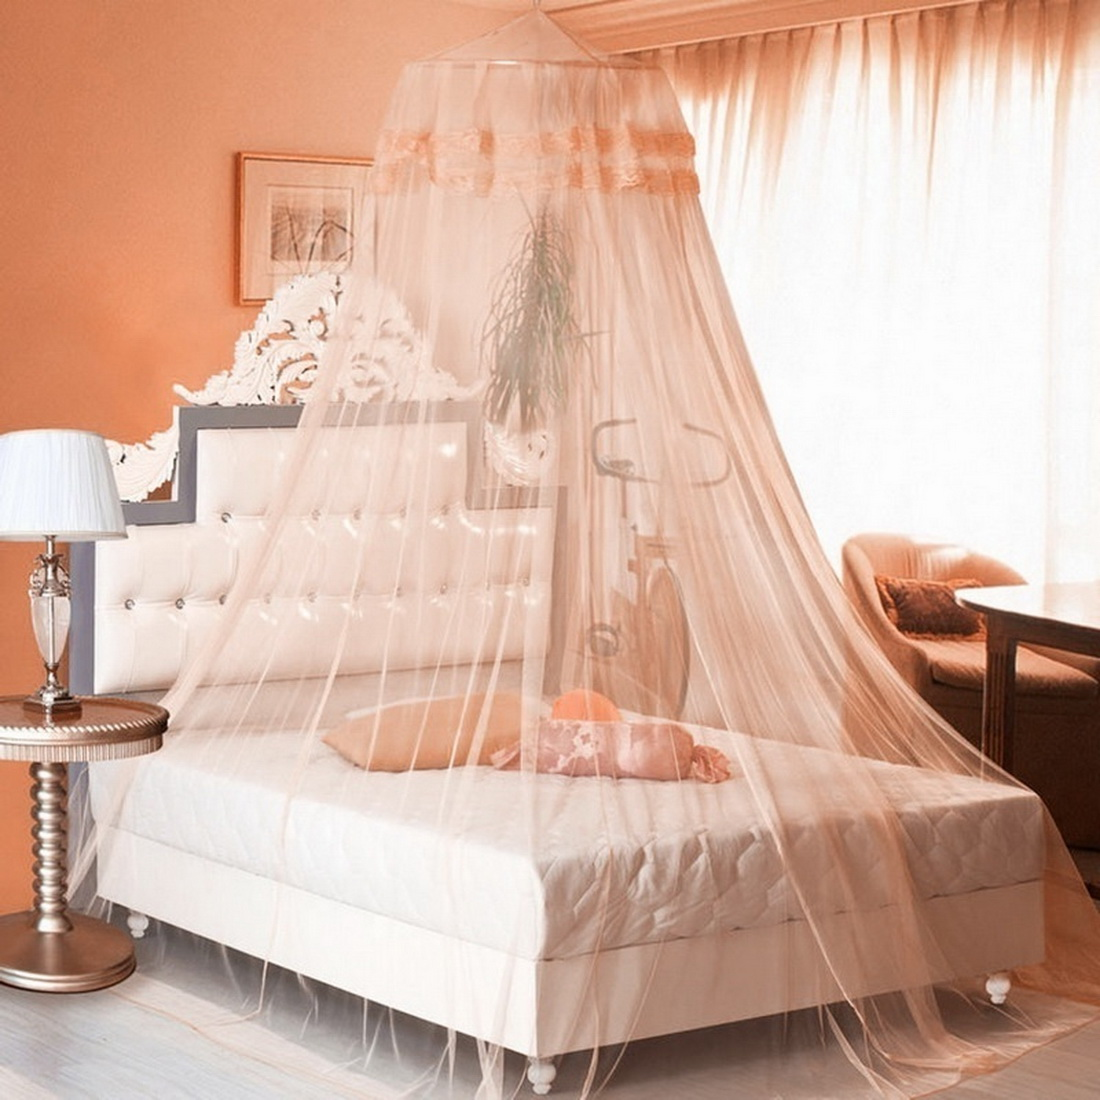 4 Colors Elgant Canopy Mosquito Net For Double Bed Mosquito Repellent Tent Insect Reject Canopy Bed Curtain Bed Tent